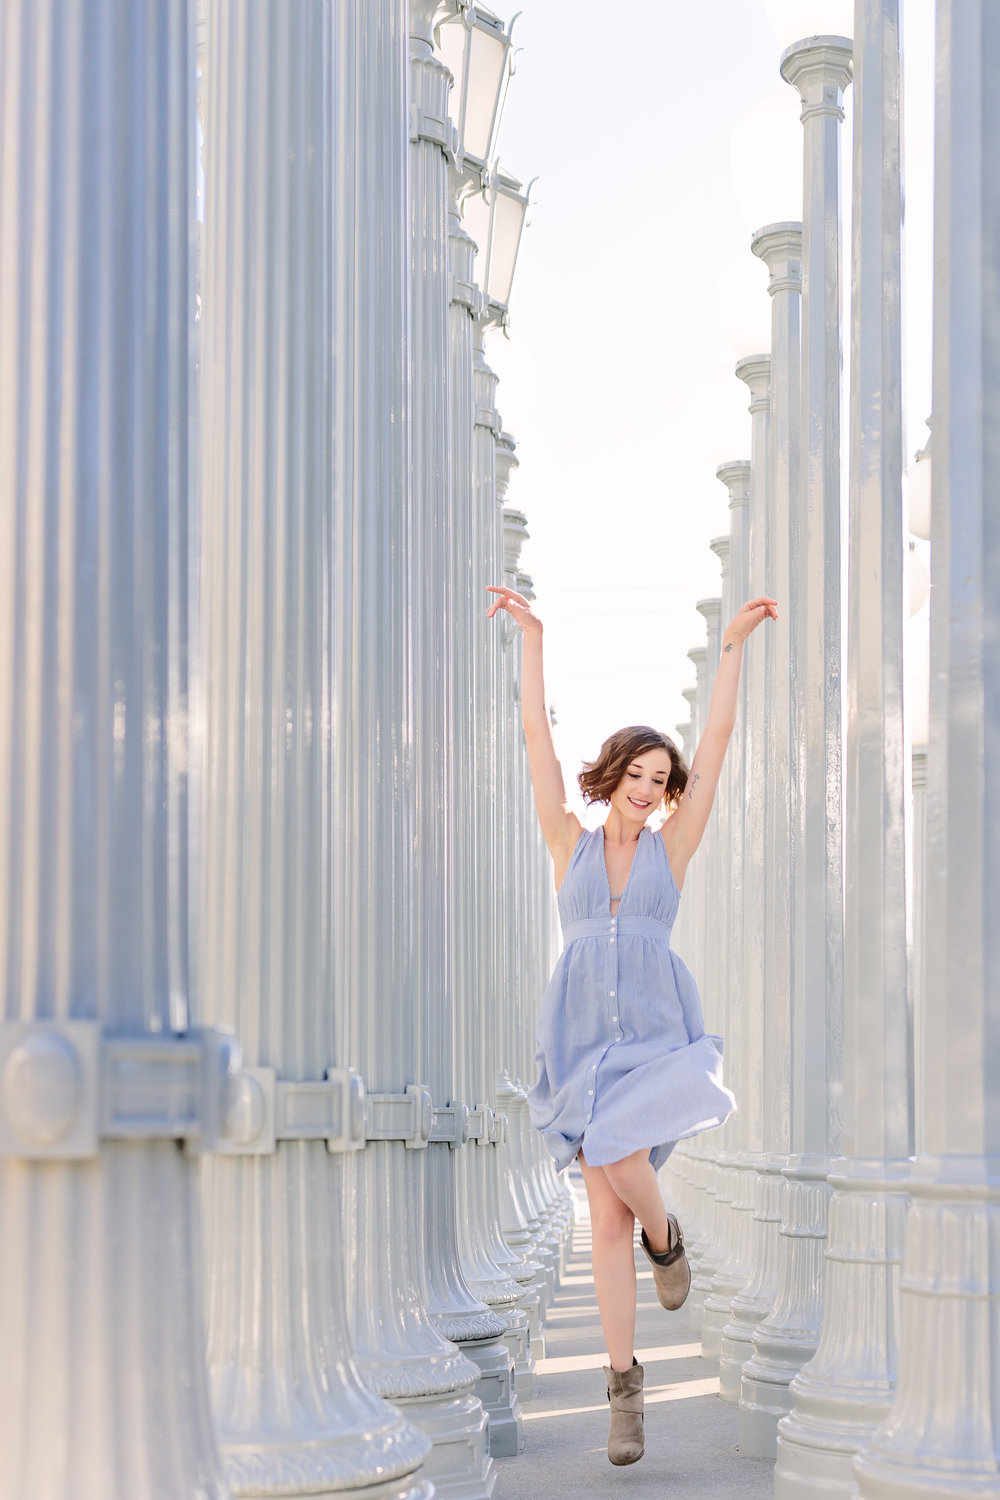 Arielle_Portrait_Session_LACMA_019.jpg